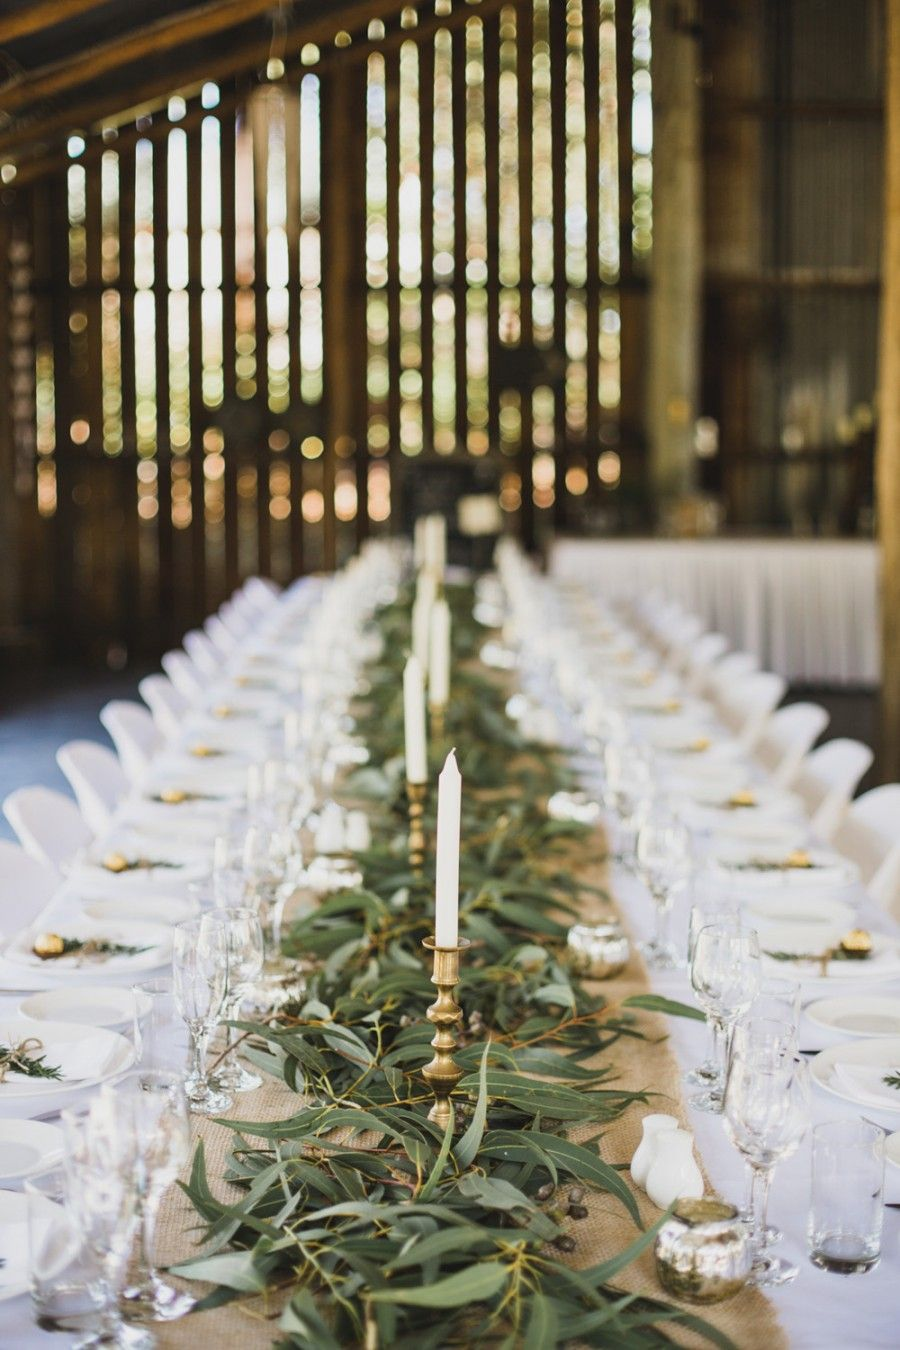 Cheap effective and smells great lay eucalyptus leaves down your cheap effective and smells great lay eucalyptus leaves down your tables be sure wedding table centerpieceswedding junglespirit Image collections